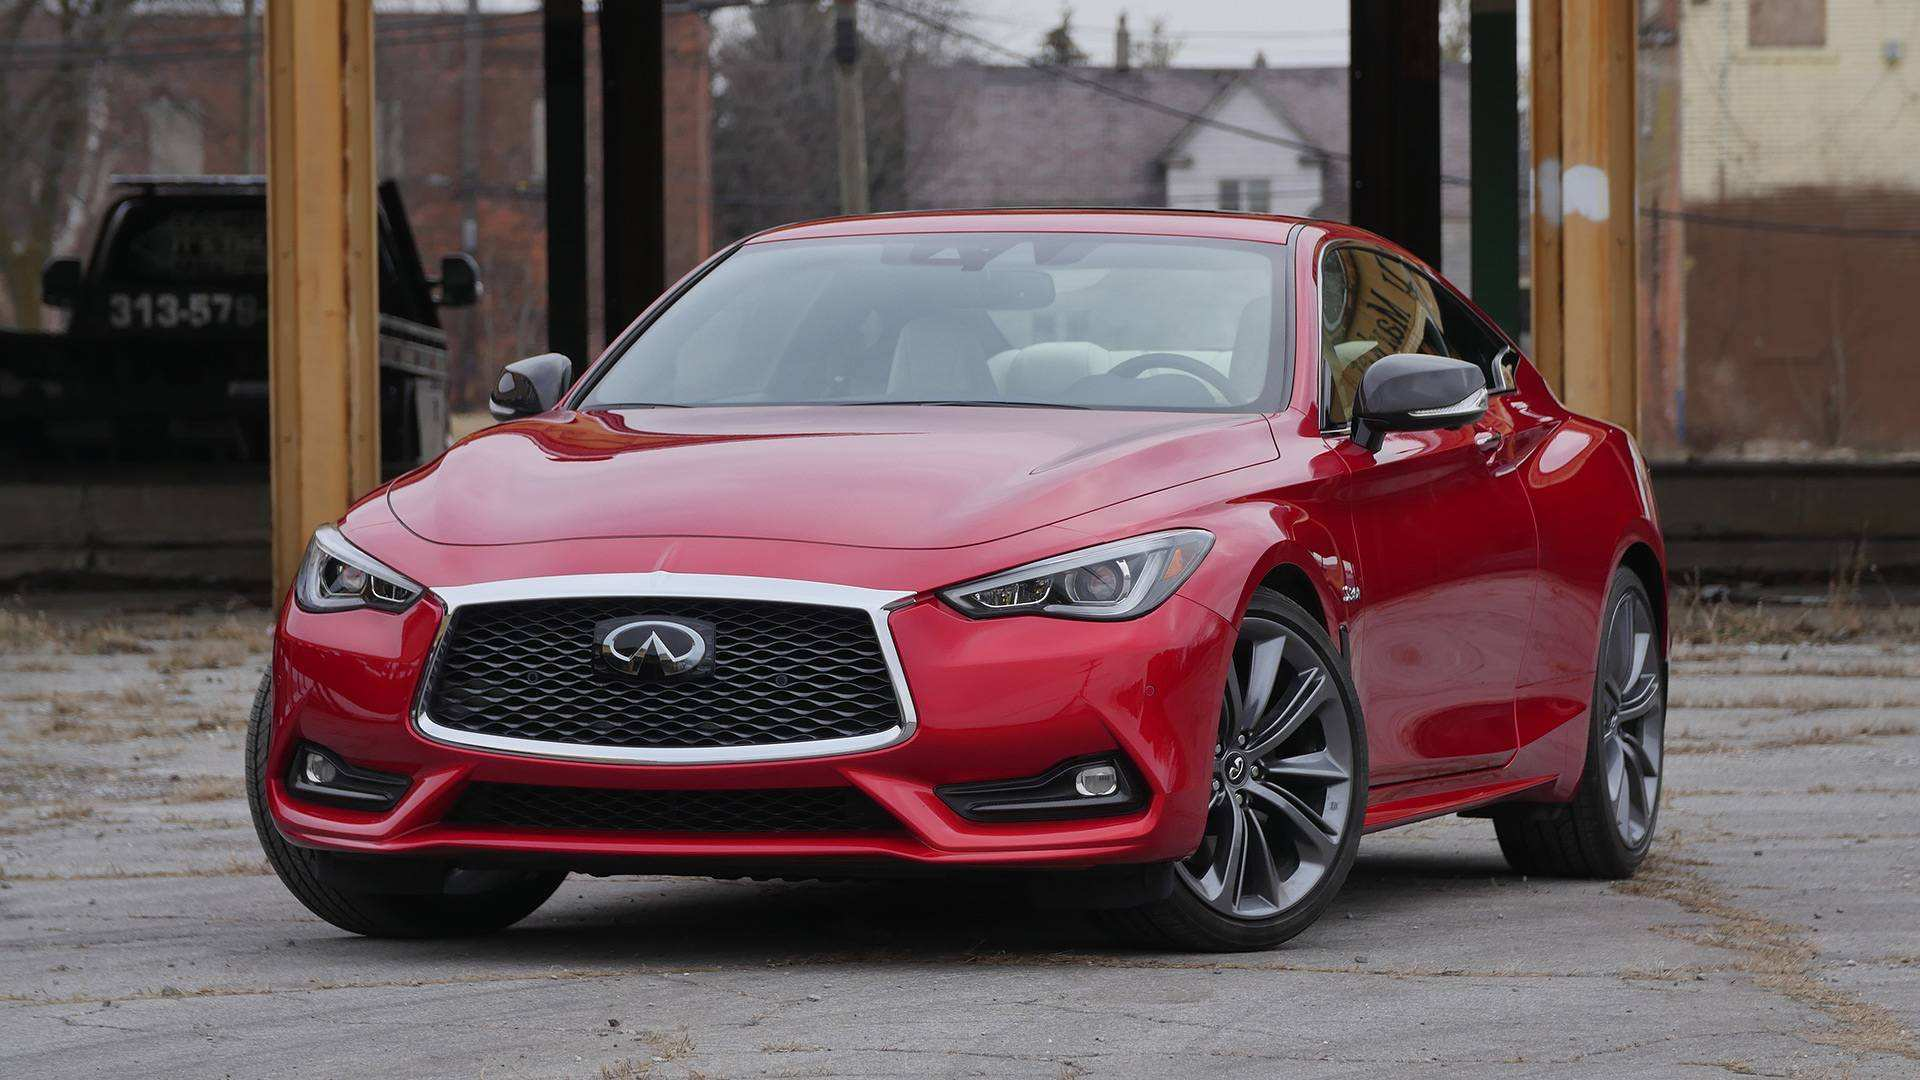 68 The Best 2020 Infiniti Q60 Coupe Style